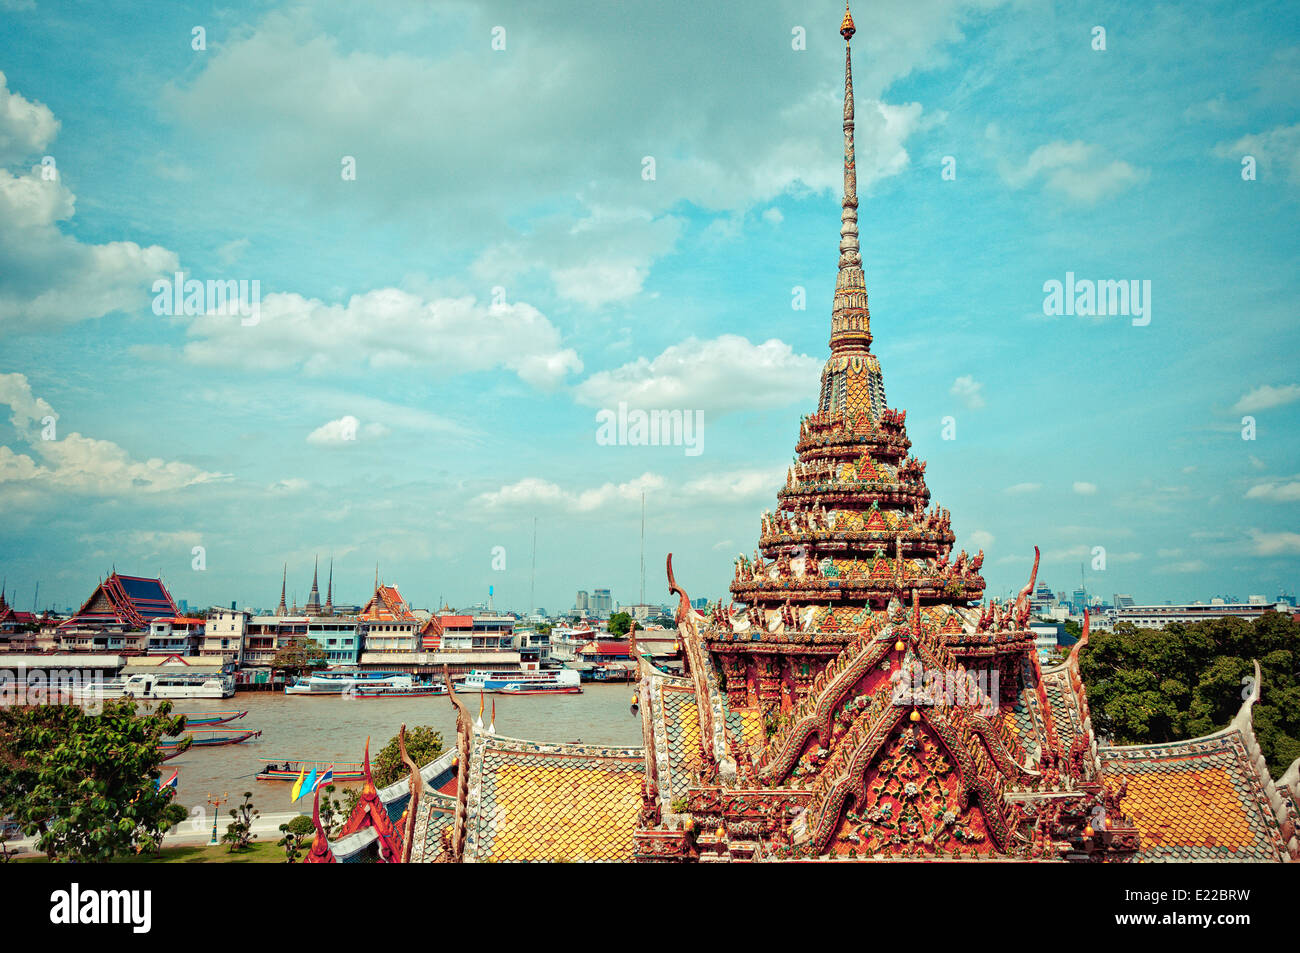 Temple of Dawn, Wat Arun, on the Chao Phraya river and dramatic sky in Bangkok, Thailand Stock Photo